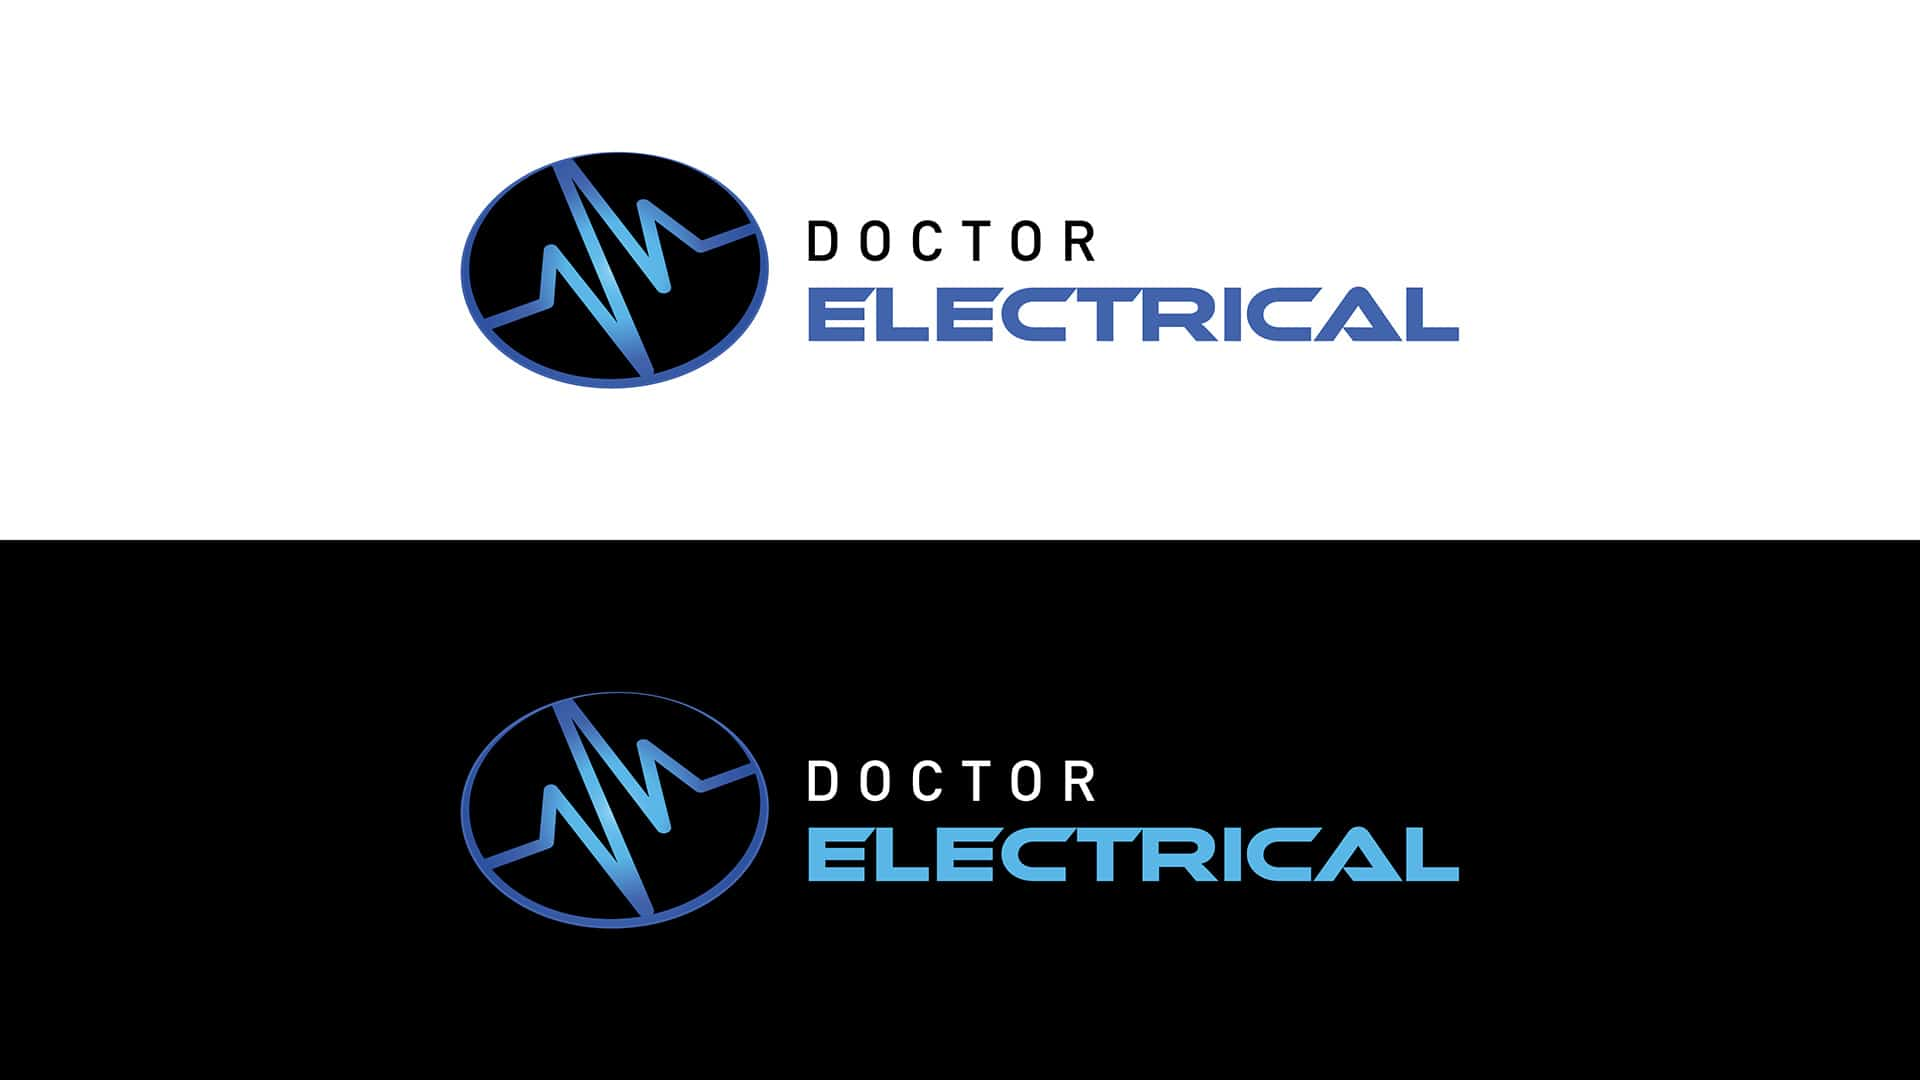 Doctor Electrical Image 7